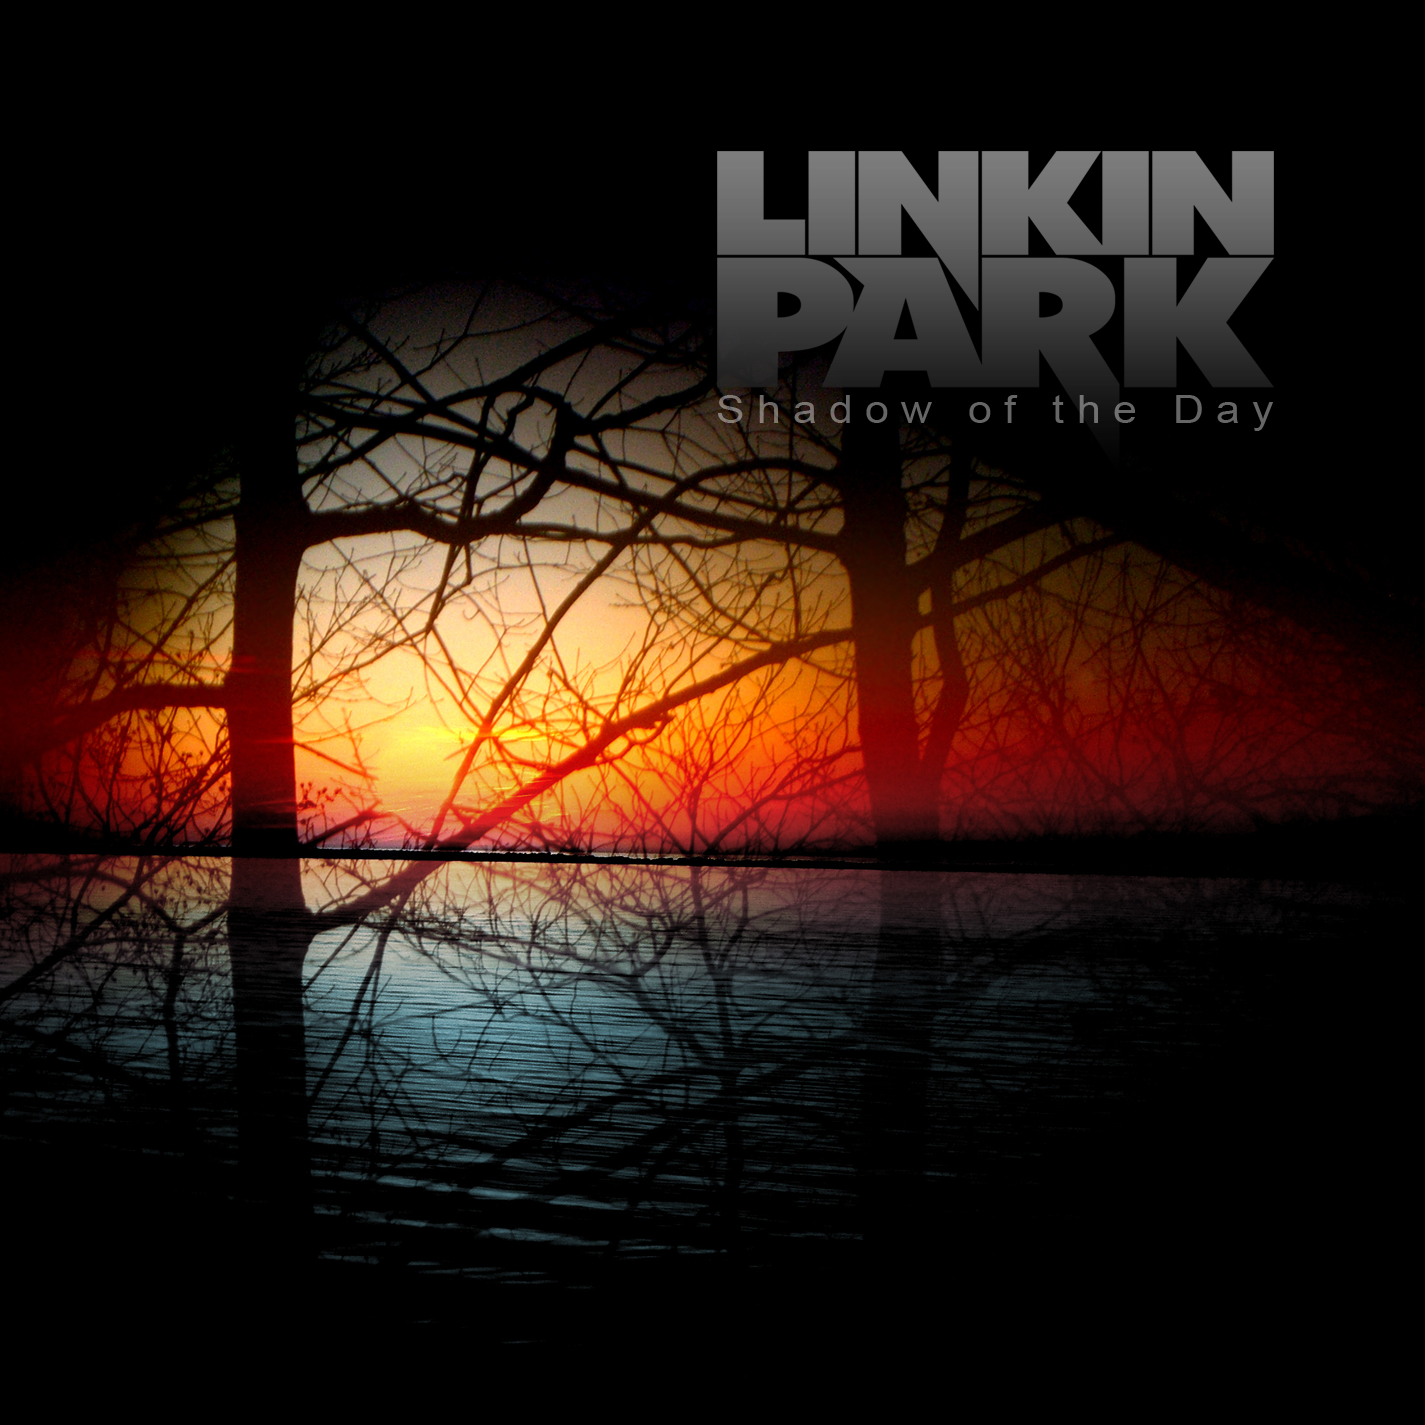 Linkin Park Shadow Of The Day By JustMarDesign On DeviantArt